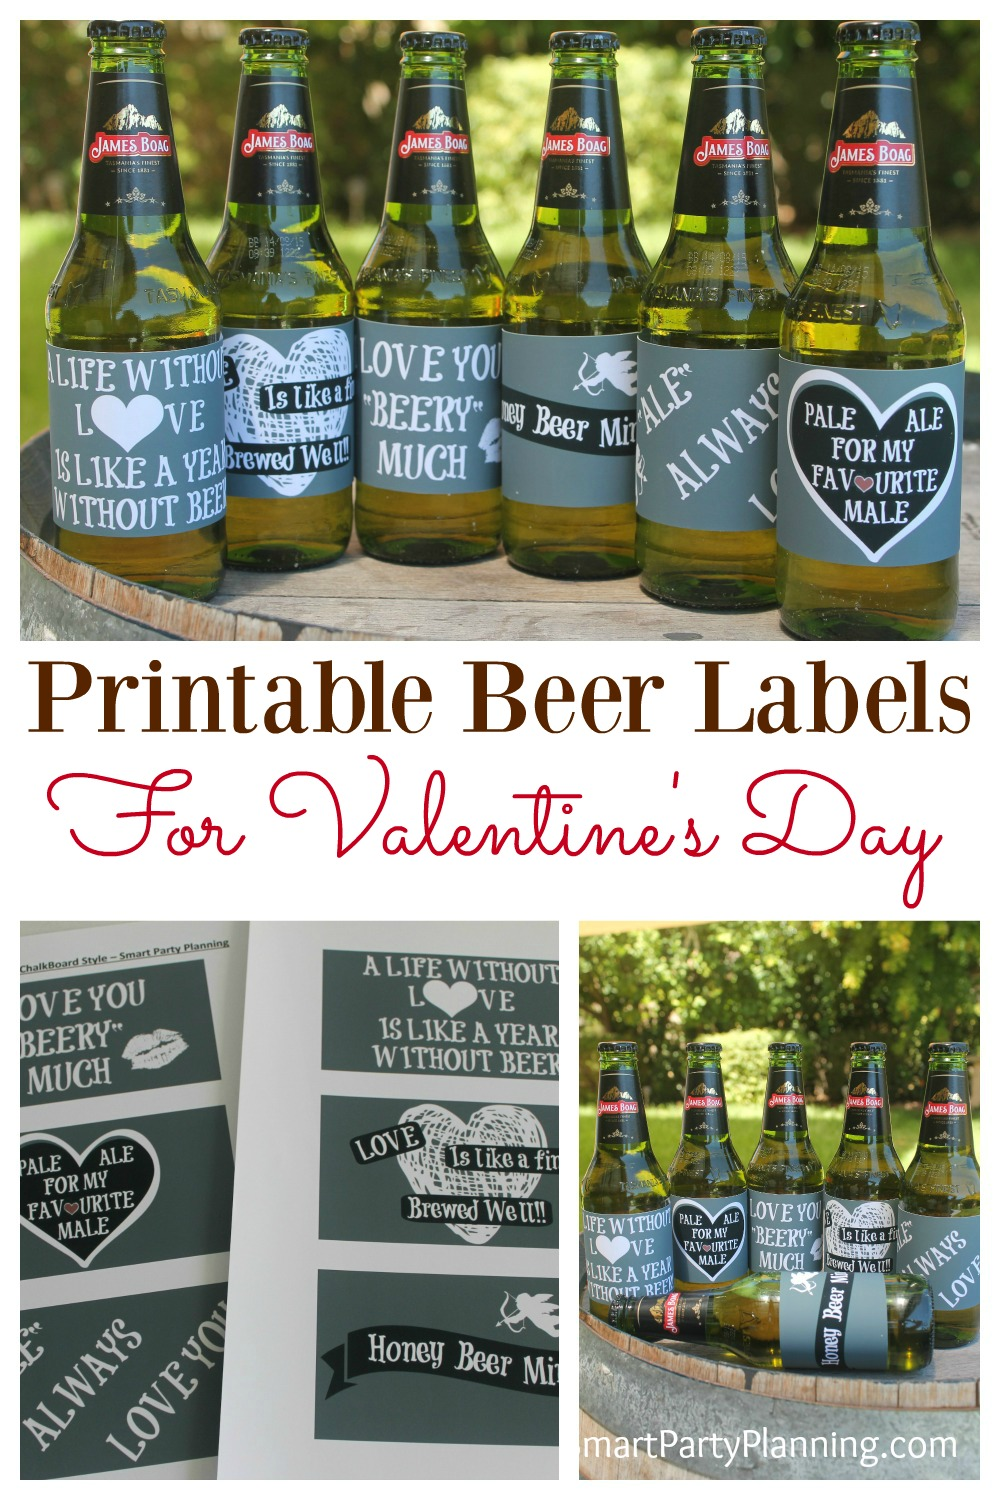 picture about Printable Beer Labels identified as The Most straightforward Layout Attractive Labels For Valentines Working day